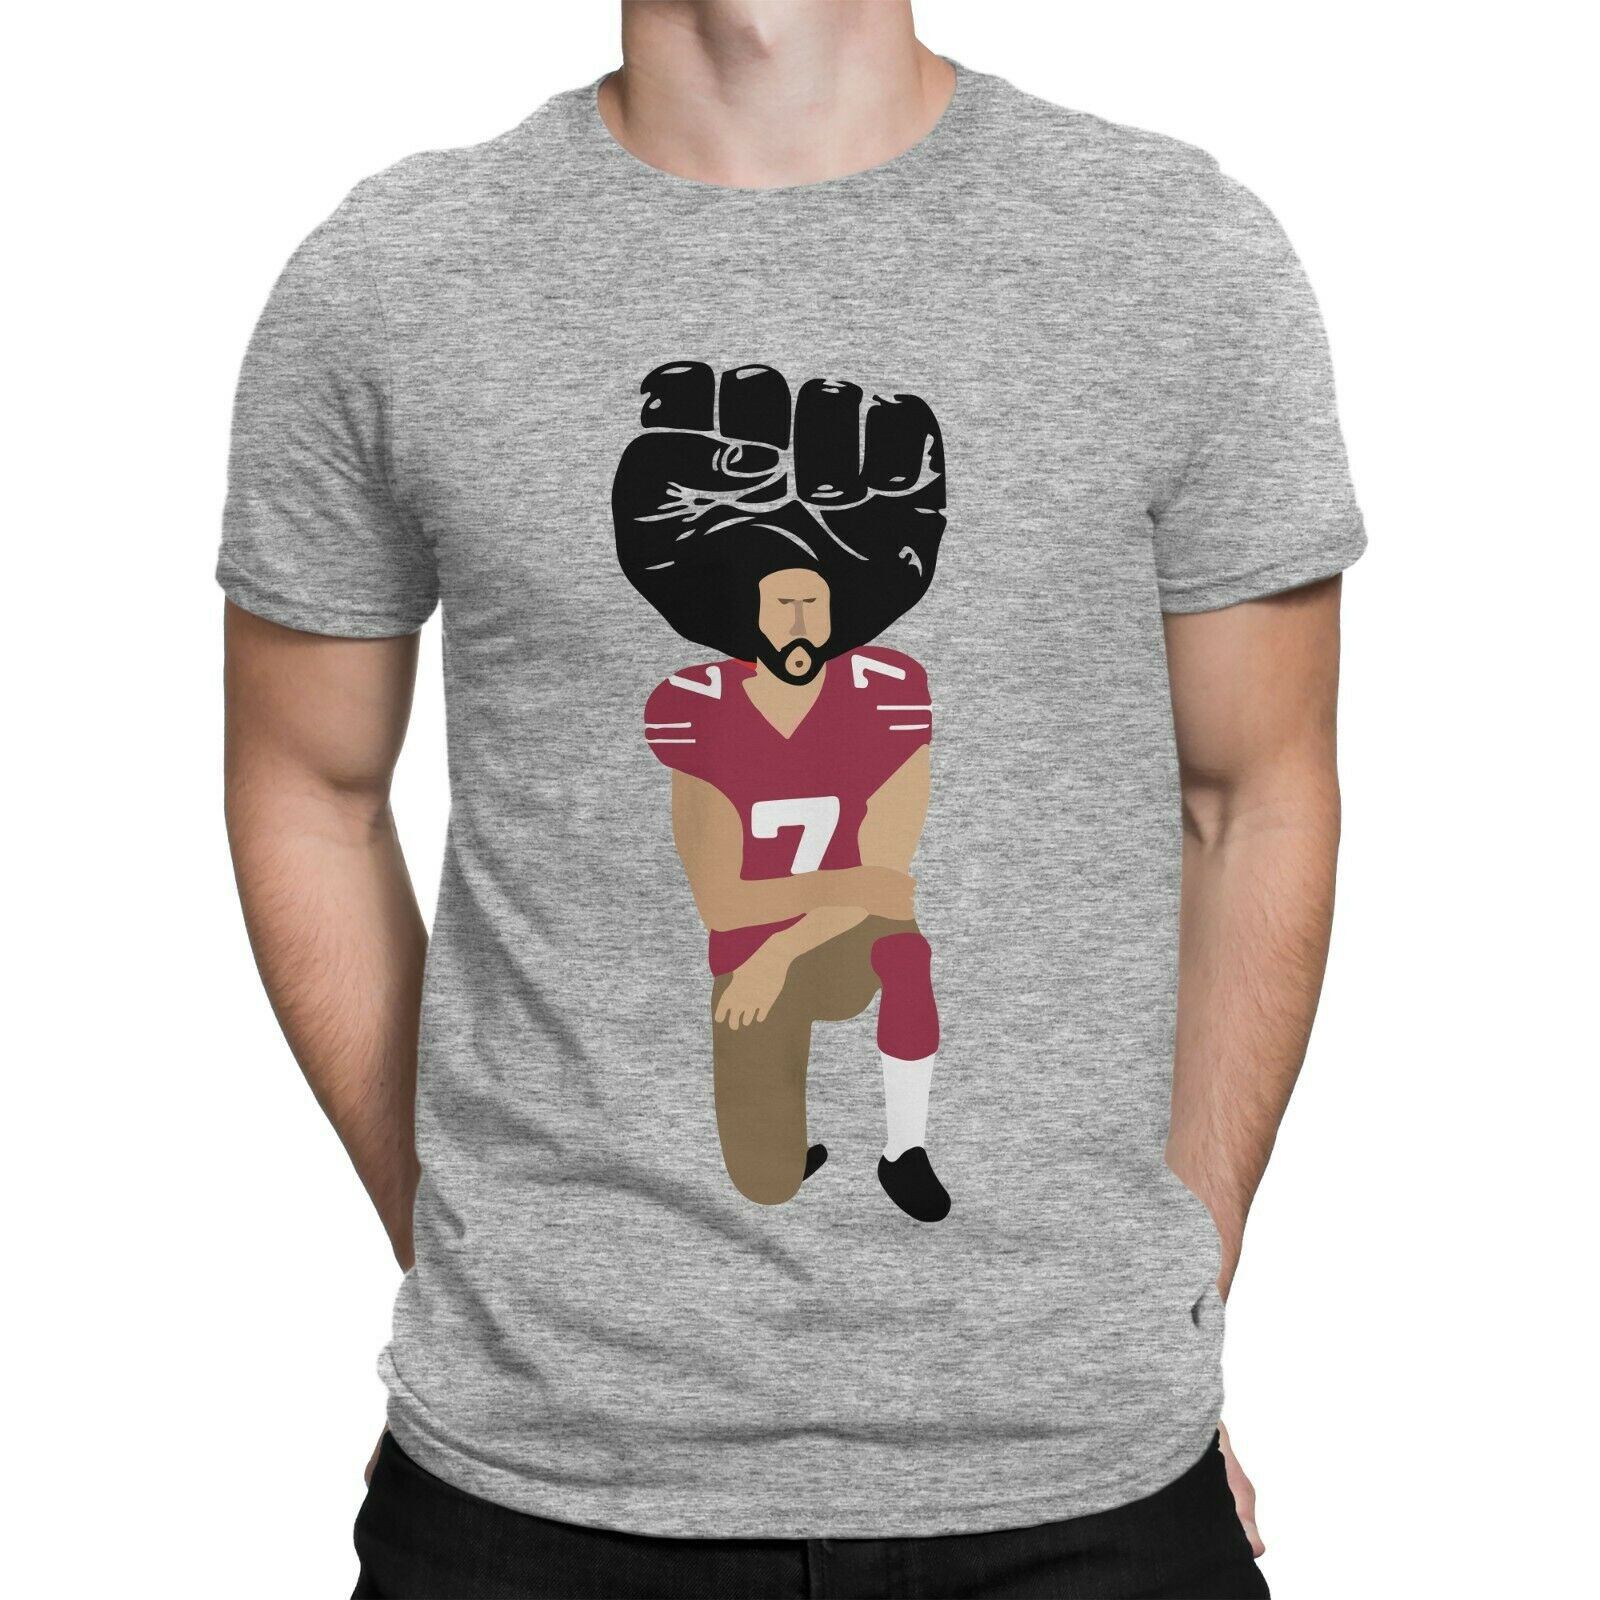 Colin Kaepernick Protest Nah Im With Kap  Football T Shirt